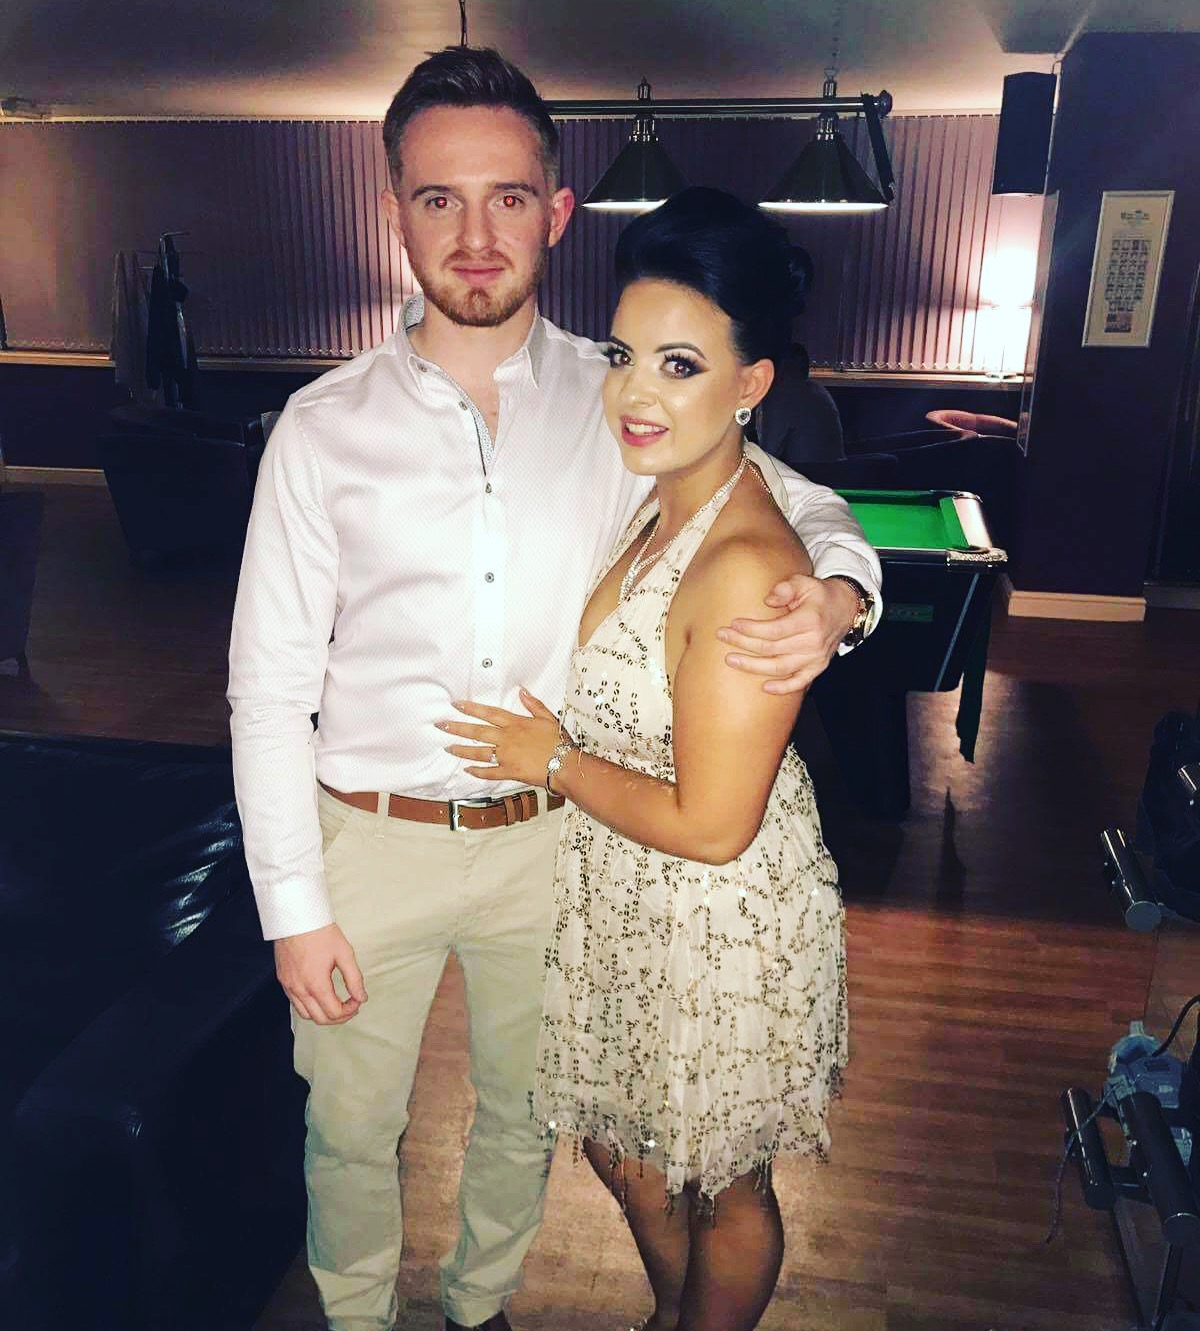 Alisdair Smith and Abigail McKie at their engagement party